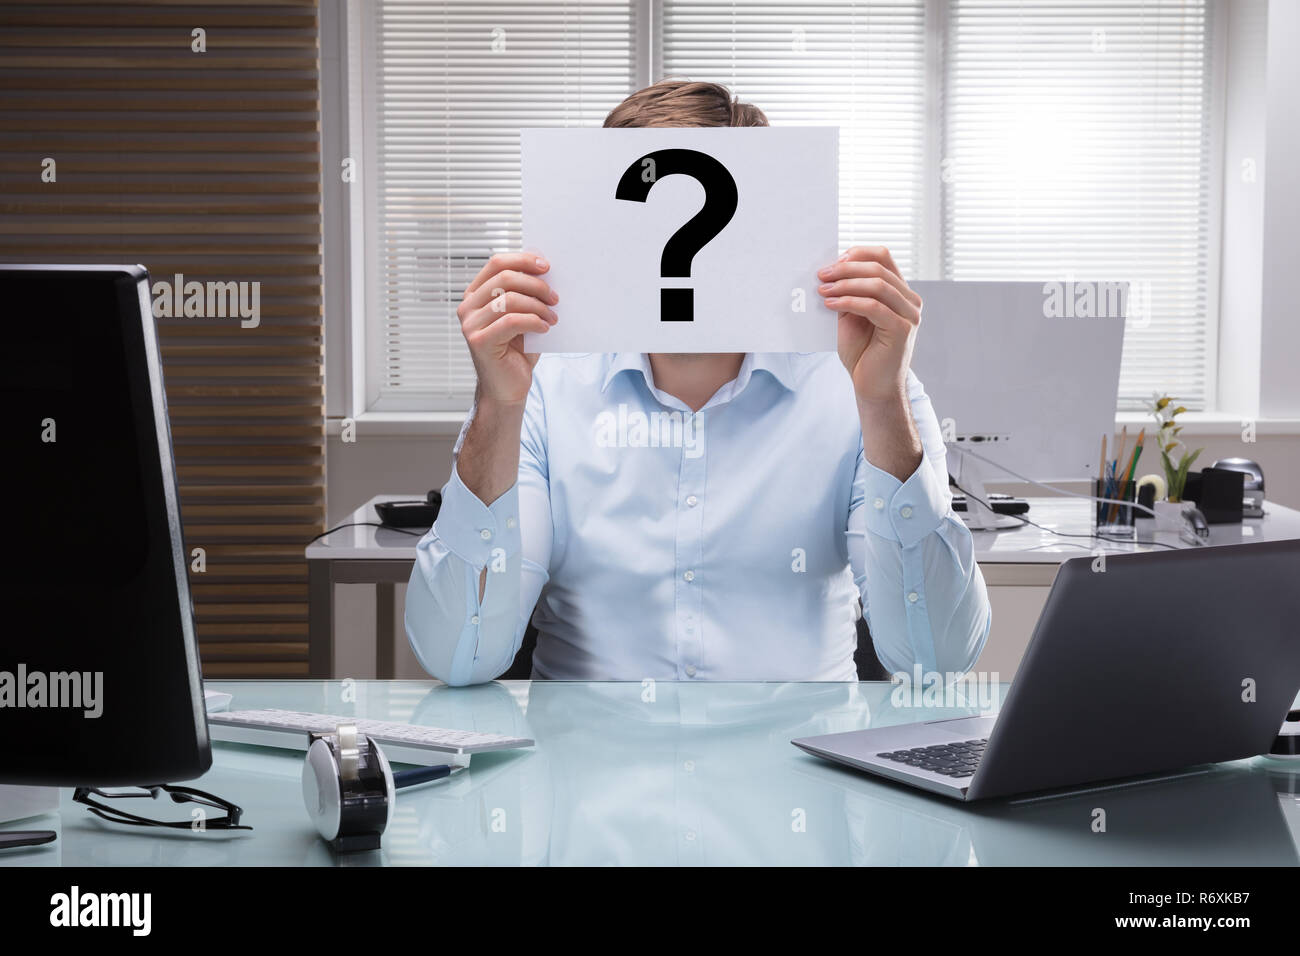 Businessperson Holding Placard With Question Mark Sign - Stock Image